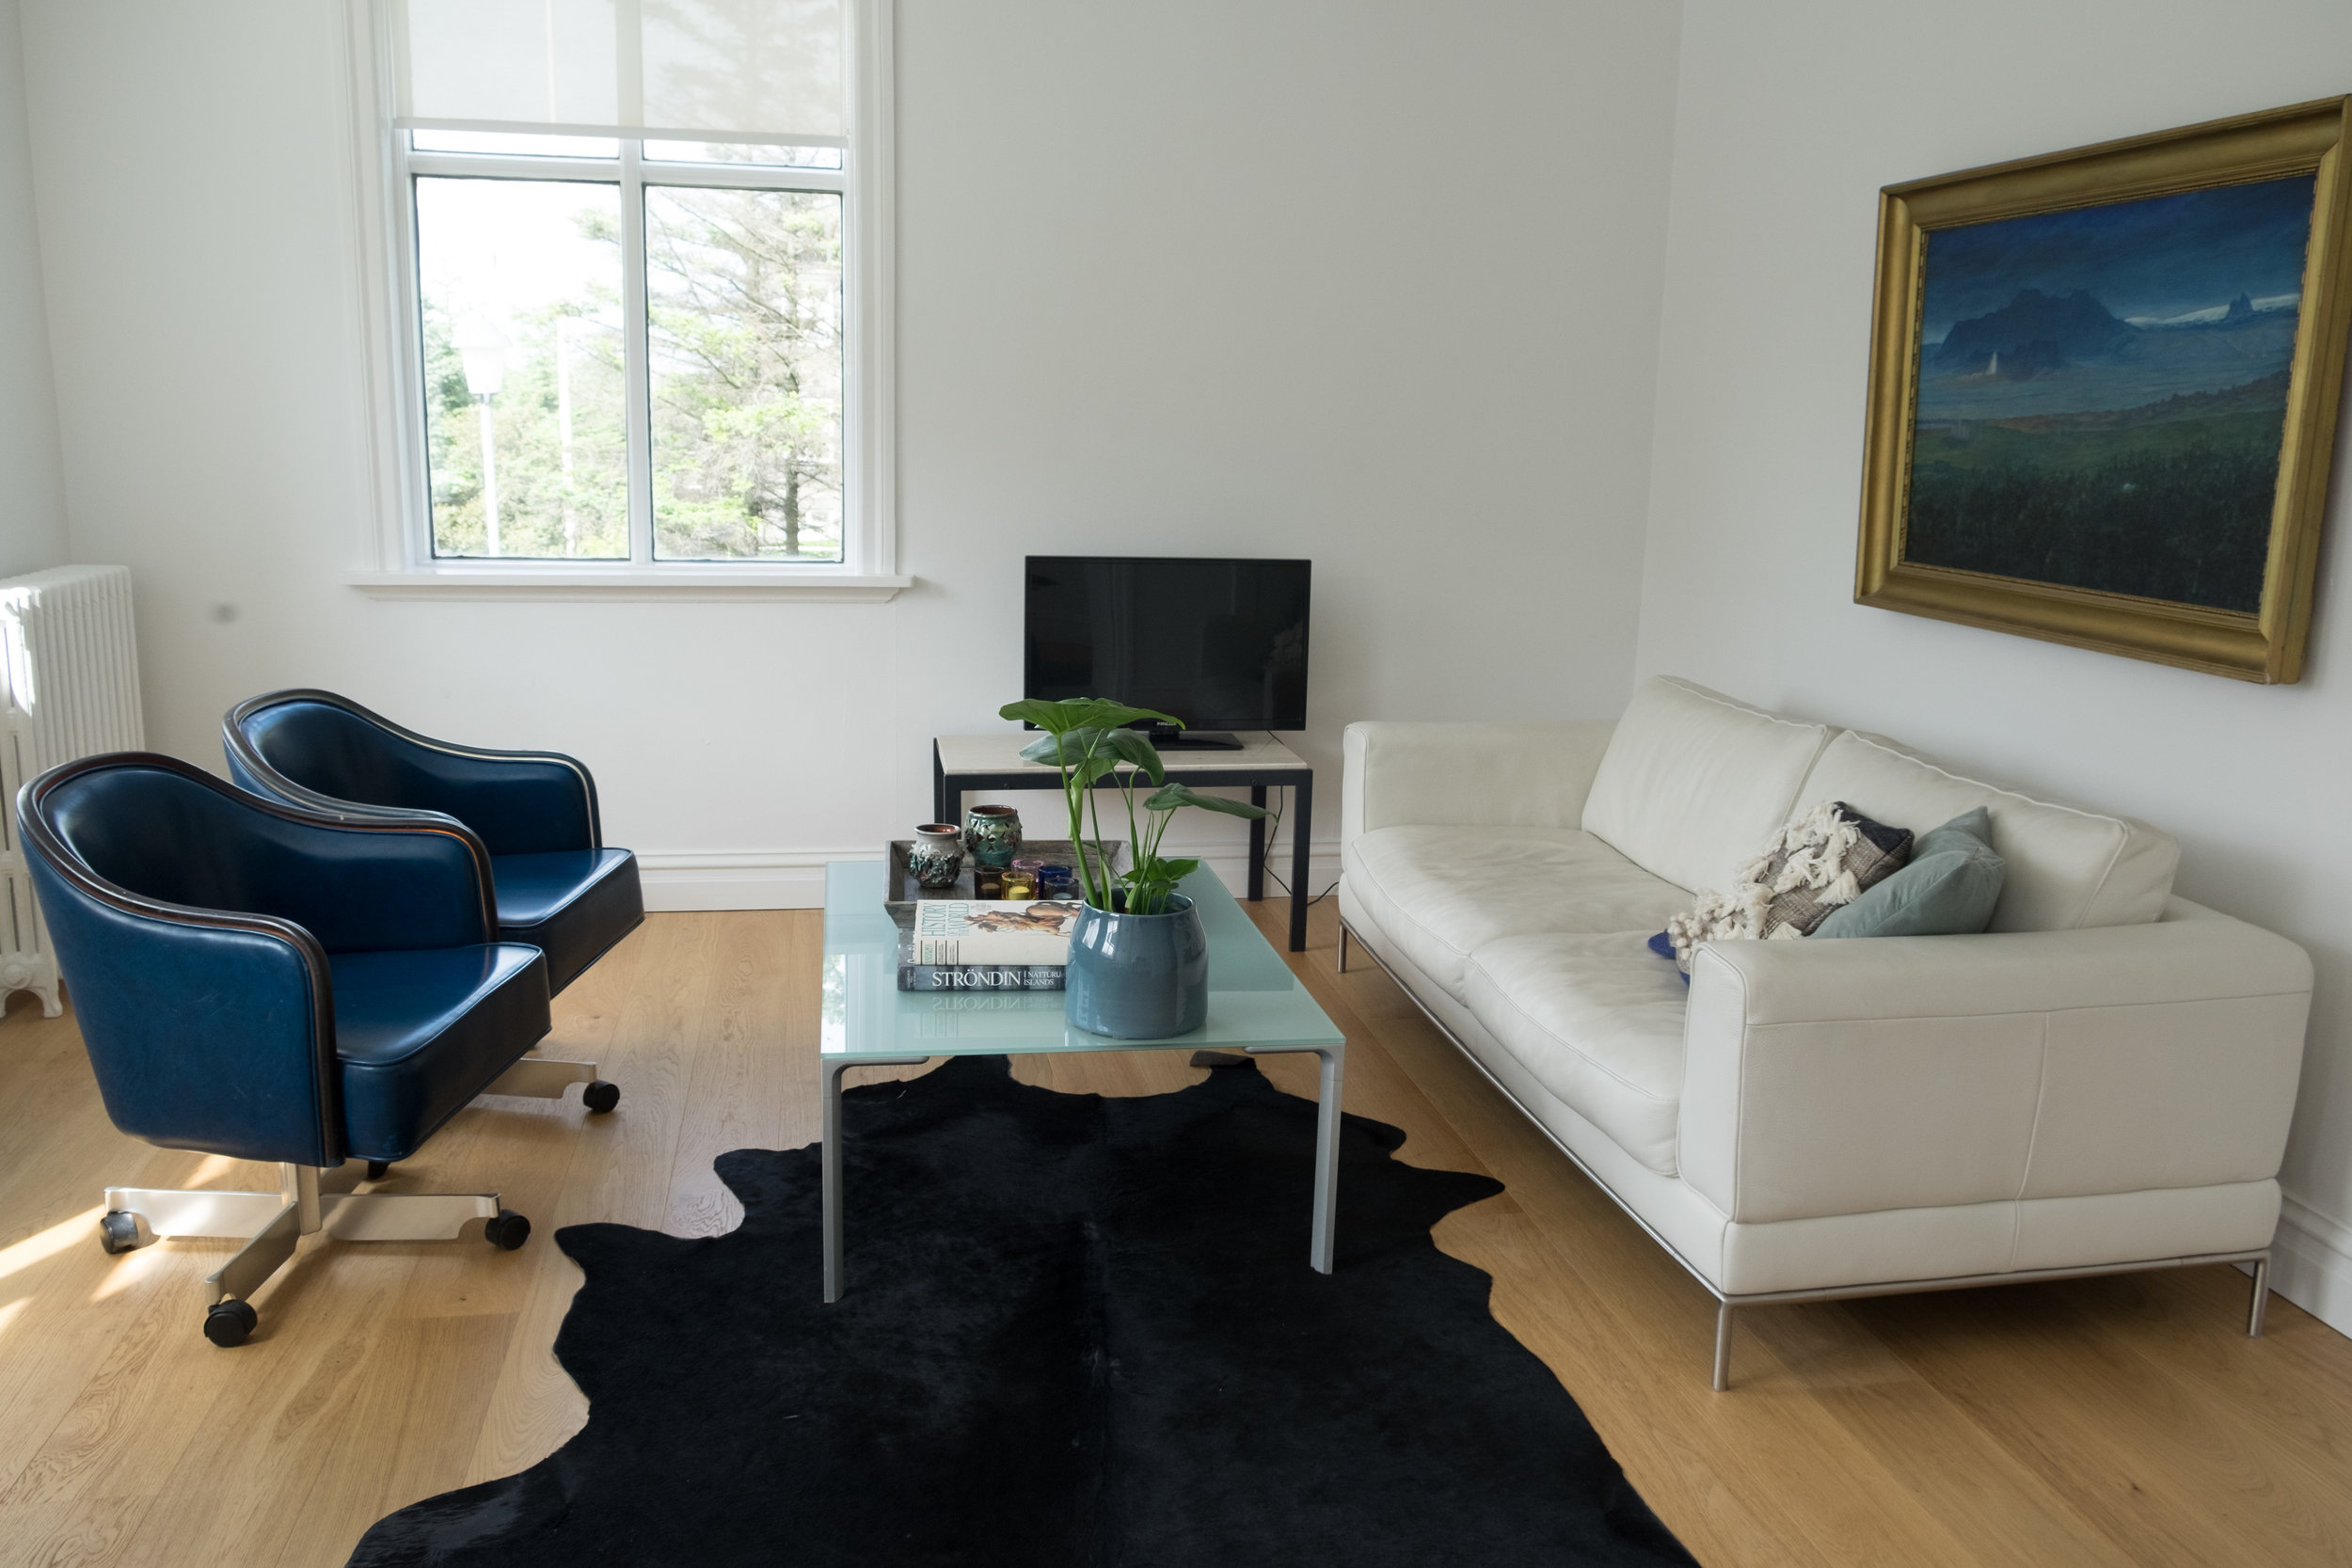 Our Air BnB was AMAZING! Three bedroom within walking distance to everything downtown reykjavik! We often ask the owners directly for discounts if we are traveling last minute, they often would rather let it go for less than just sit there empty.